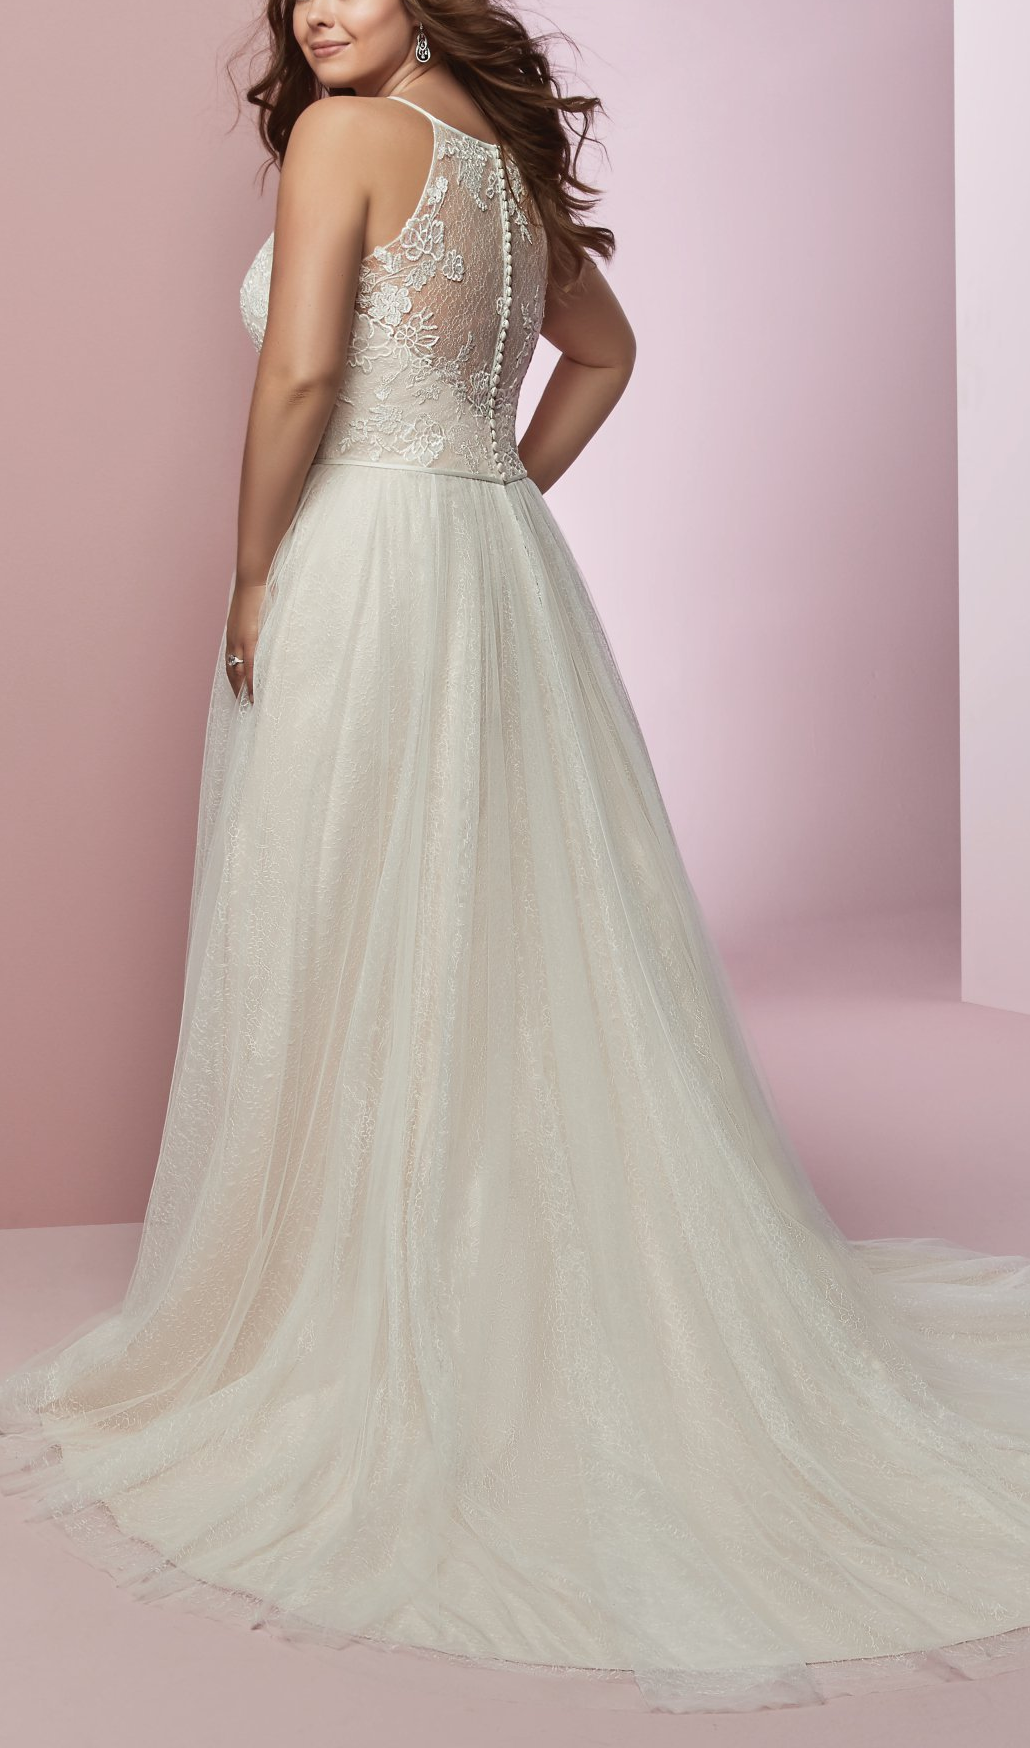 725087bb15e4 Rebecca Ingram - HEIDI, Soft lace motifs dance over allover lace in the  bodice of this boho wedding dress, featuring a sheer halter neckline and  sheer lace ...